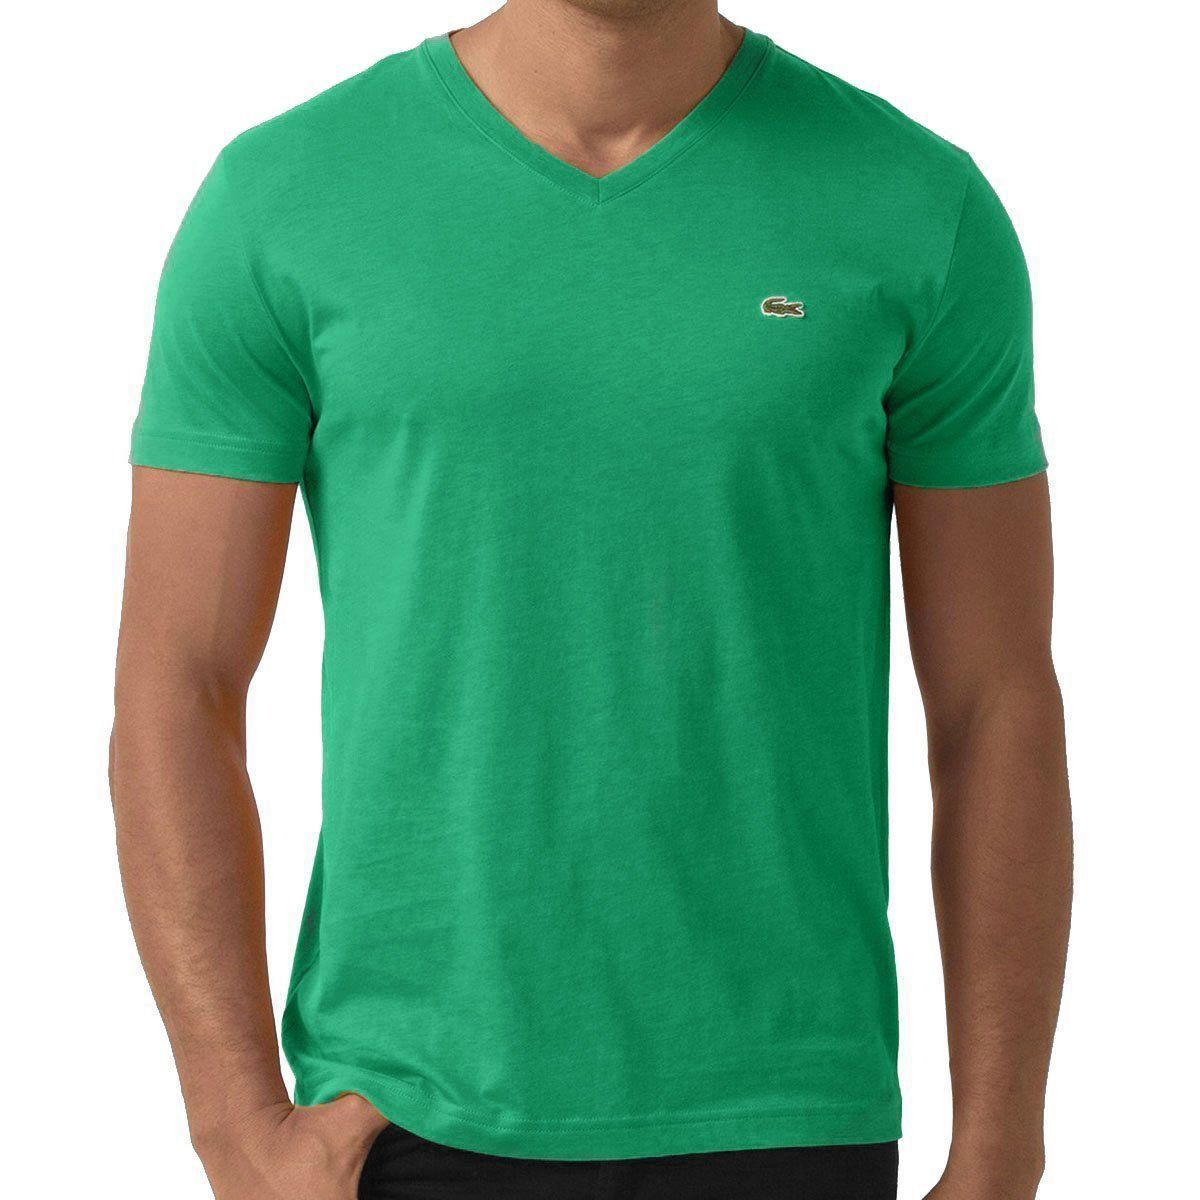 NEW LACOSTE MEN'S PREMIUM PIMA COTTON V-NECK SHIRT T-SHIRT CHLOROPHYLL GREEN